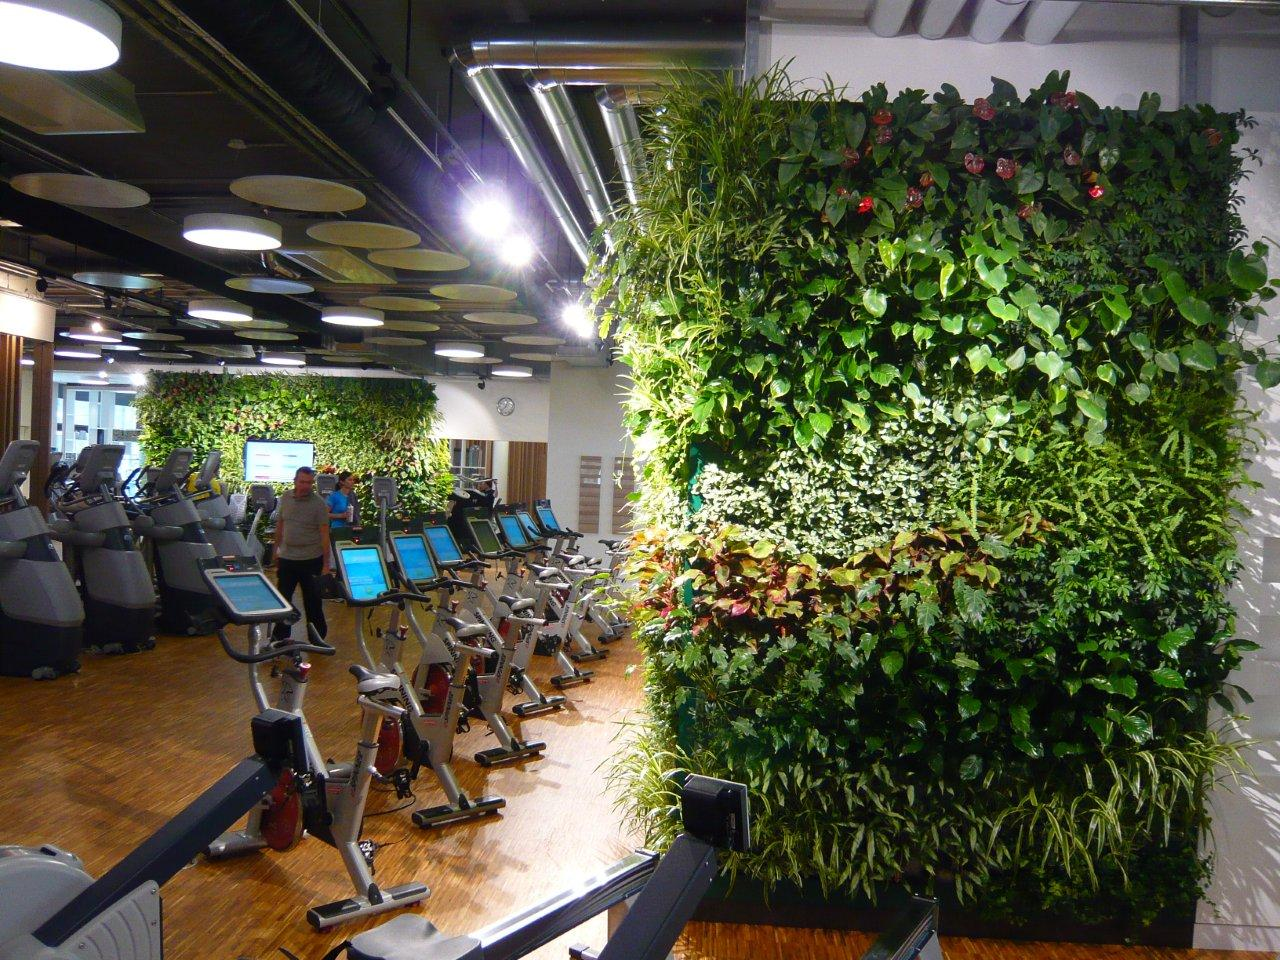 Plants in interior design - health and fitness club